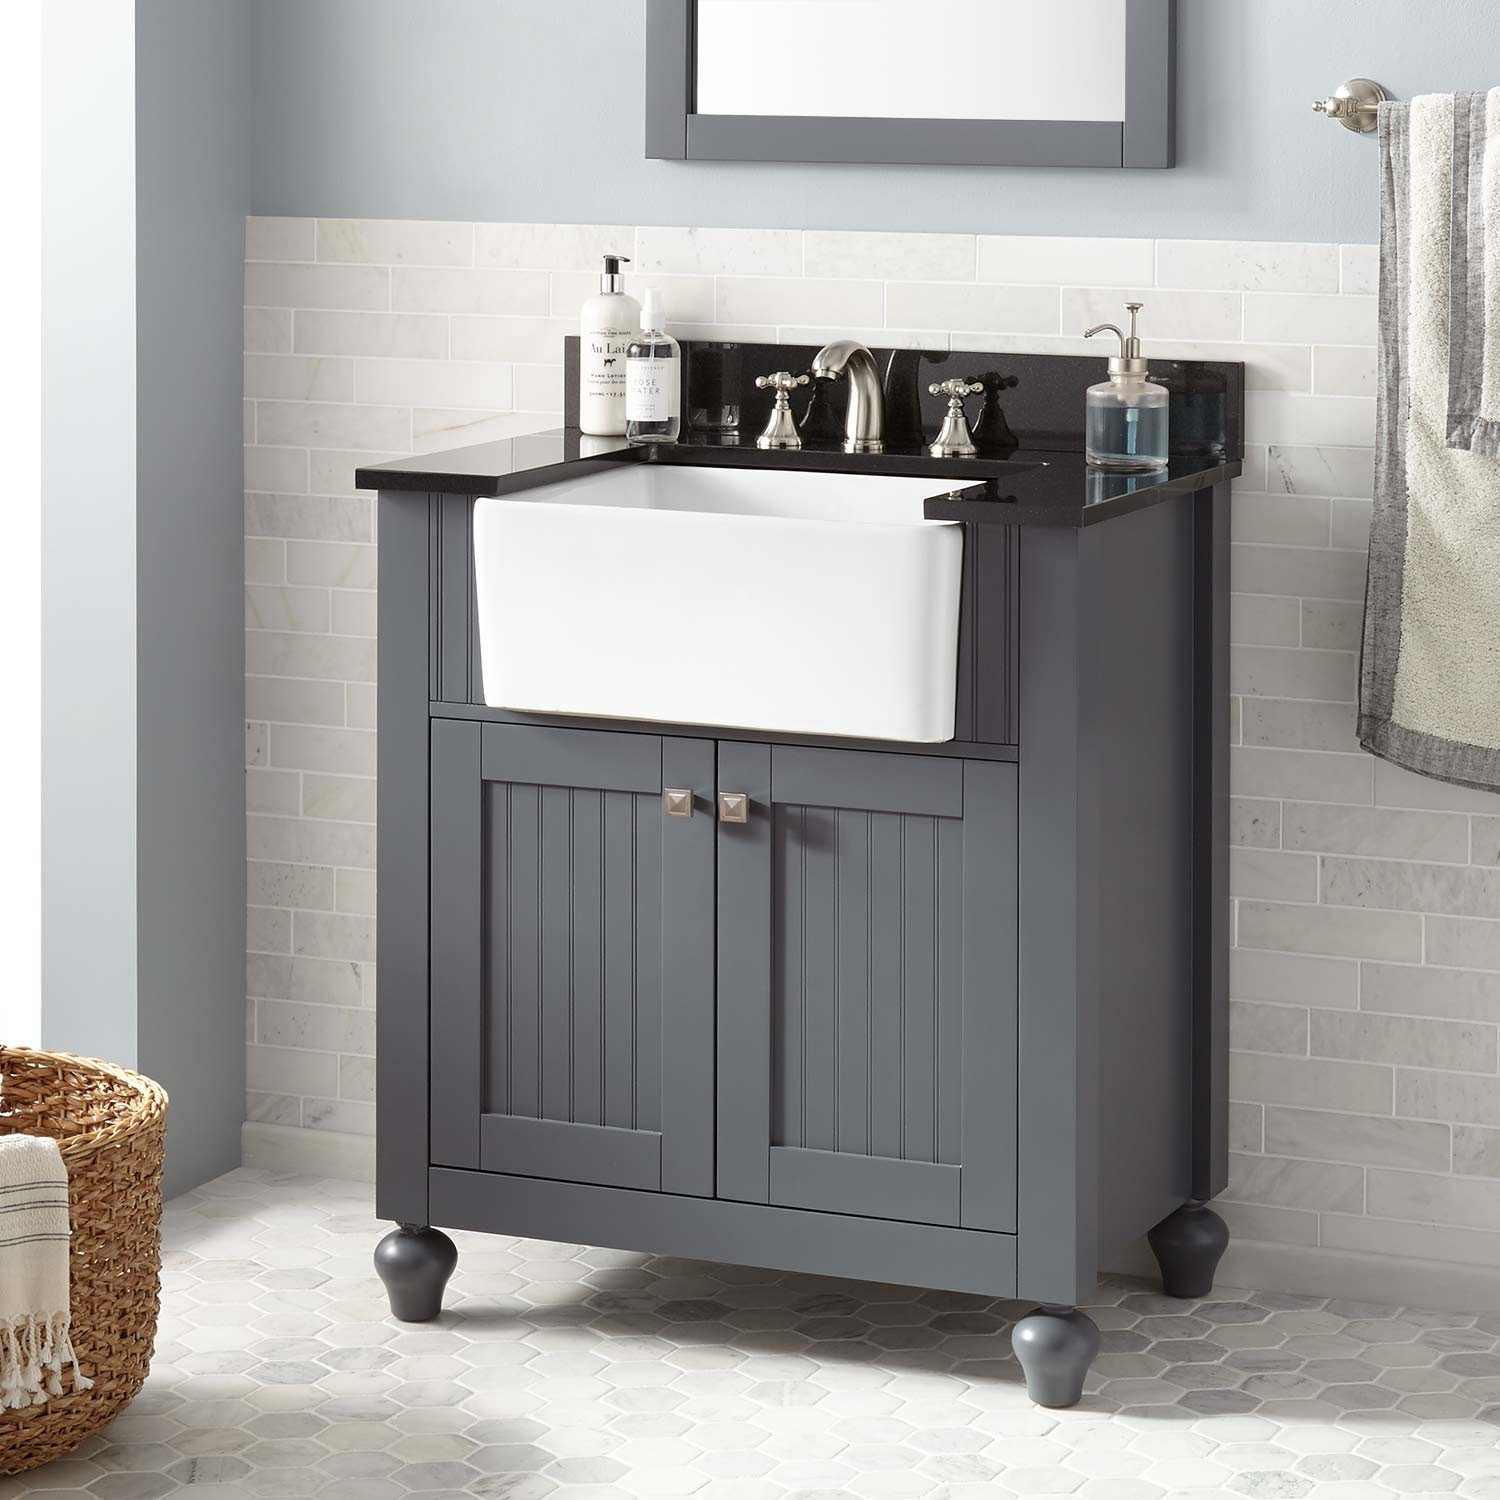 "Glamorous 30"" Nellie Farmhouse Sink Vanity - Dark Gray - Bathroom throughout Good quality Bathroom Farm Sink Vanity"